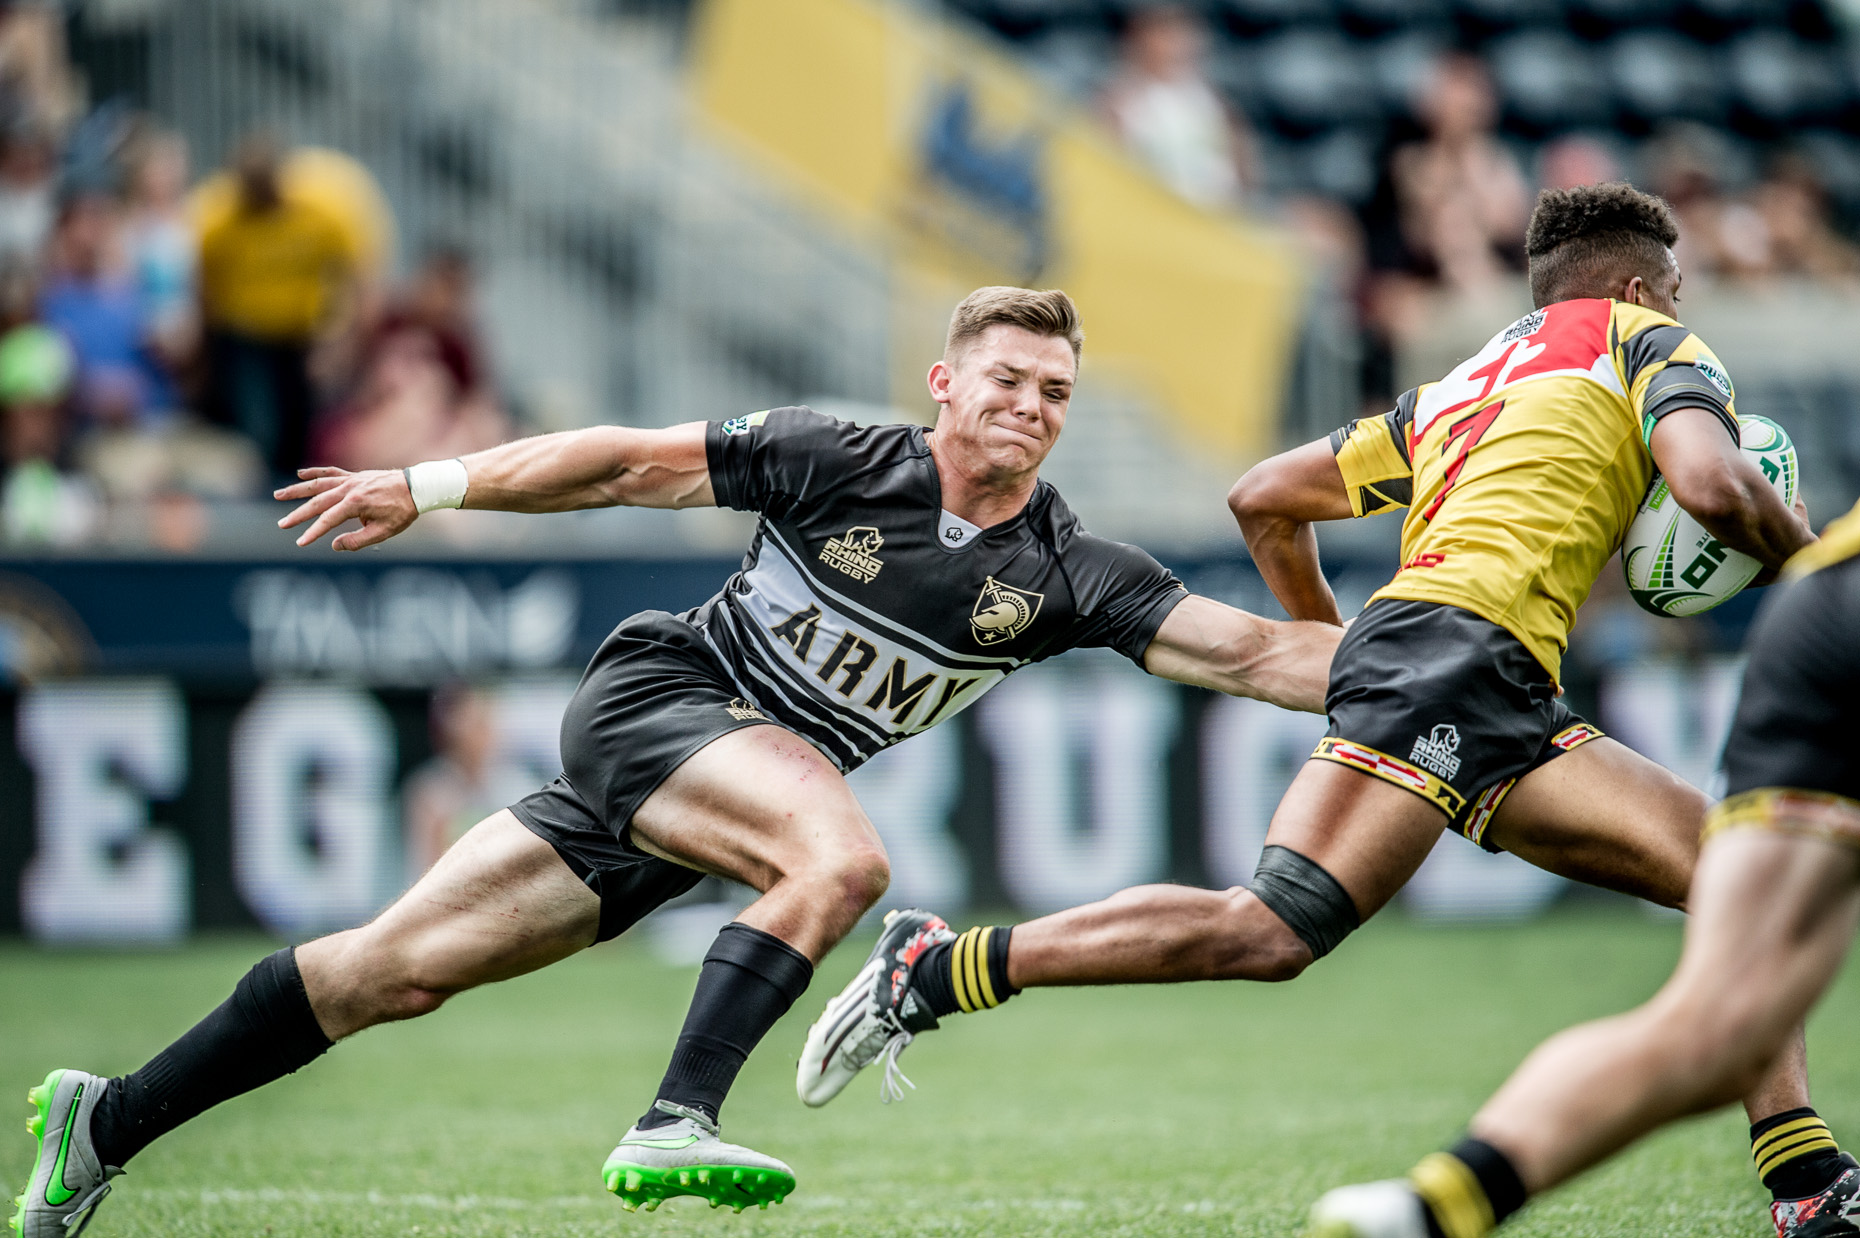 commercial-rugby-sports-men-action